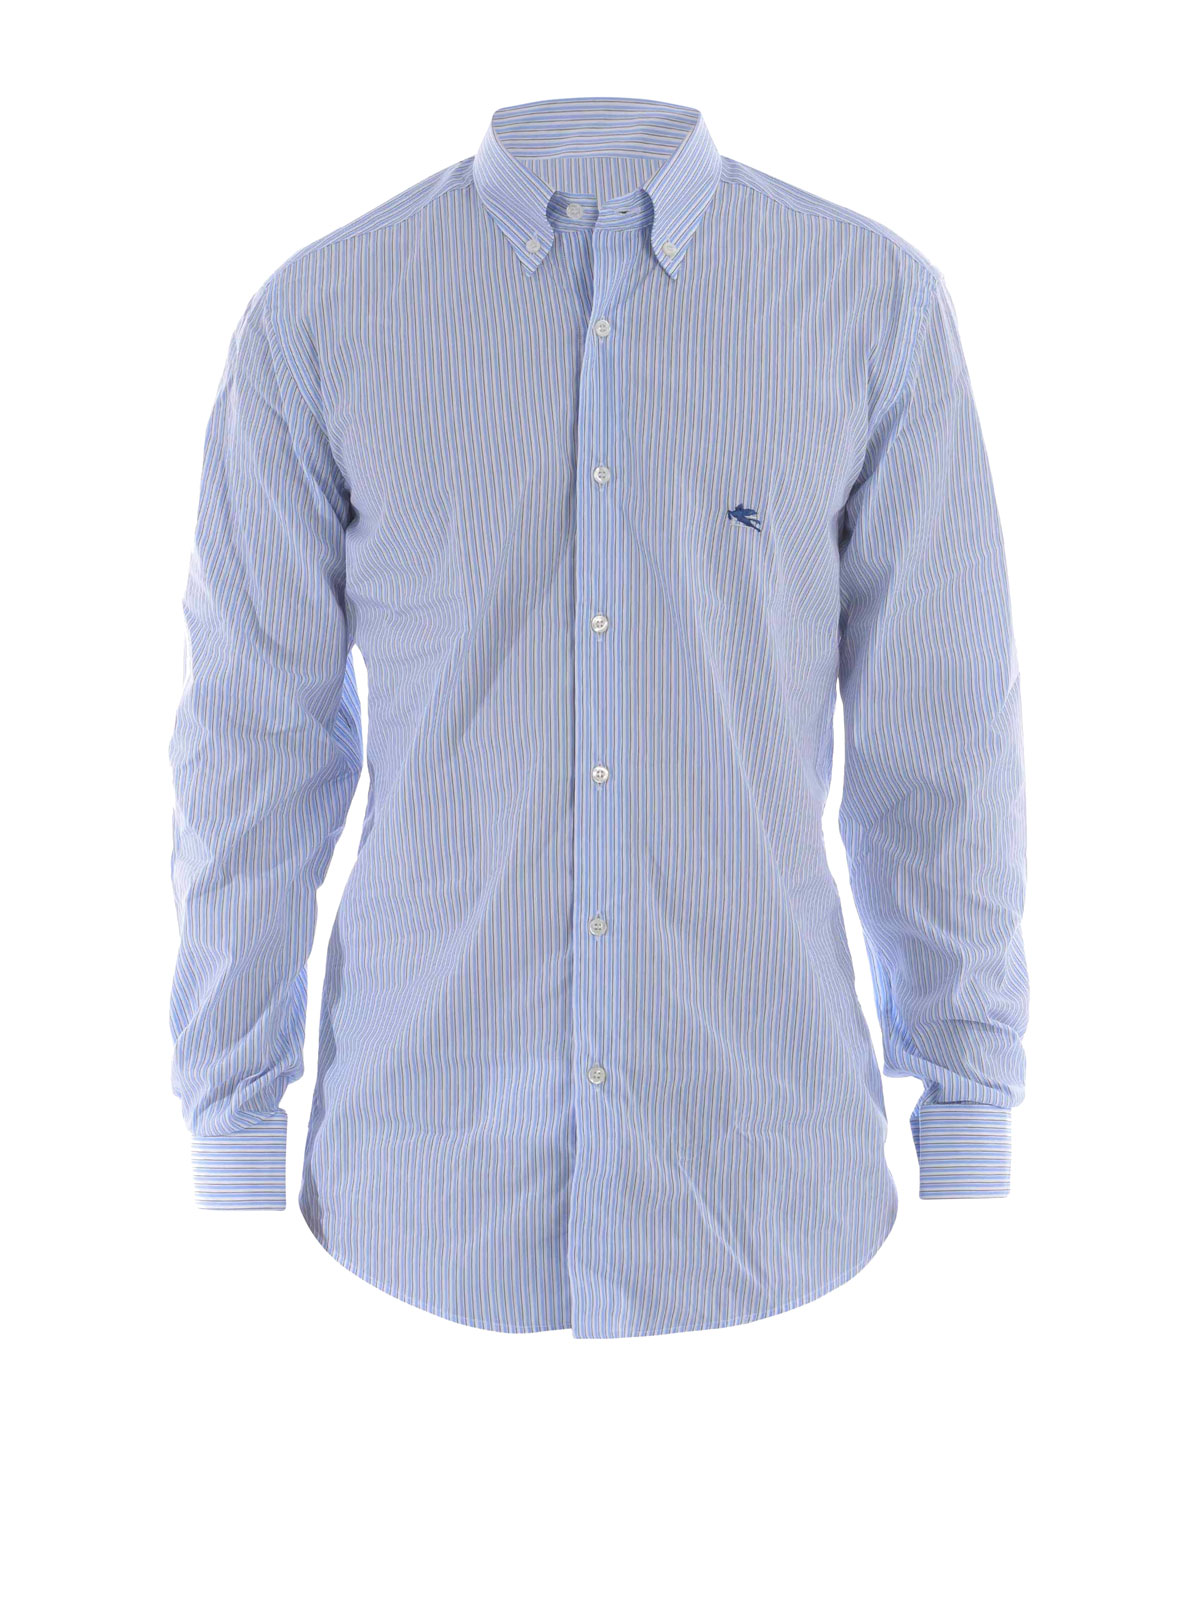 Striped cotton poplin shirt by etro shirts ikrix for What is a poplin shirt